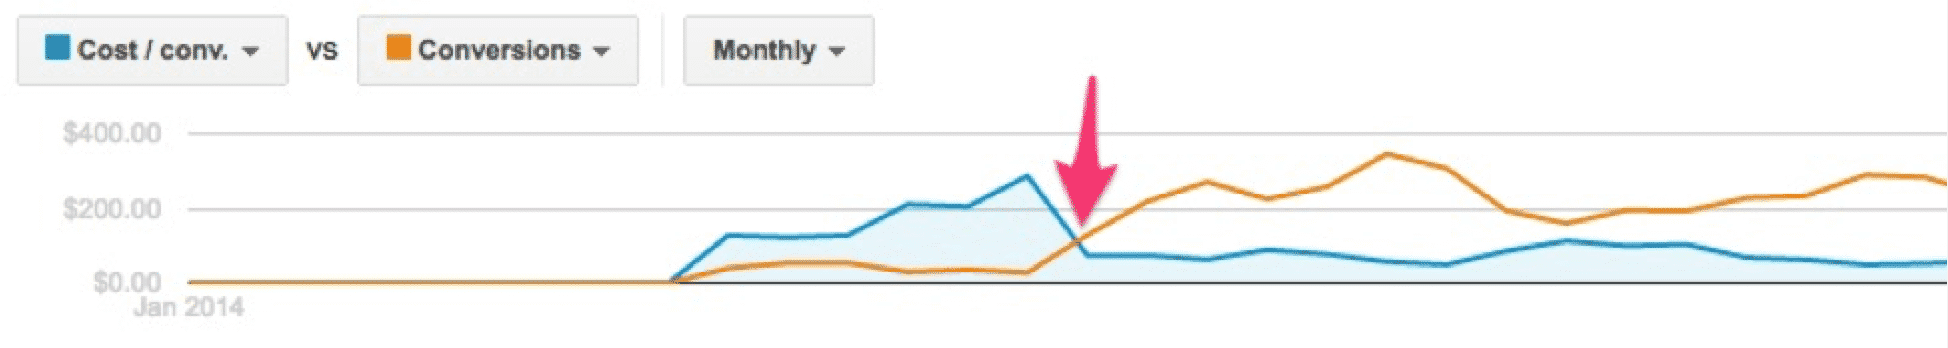 Tracking Web Conversions: Case Study 2 | Disruptive Advertising